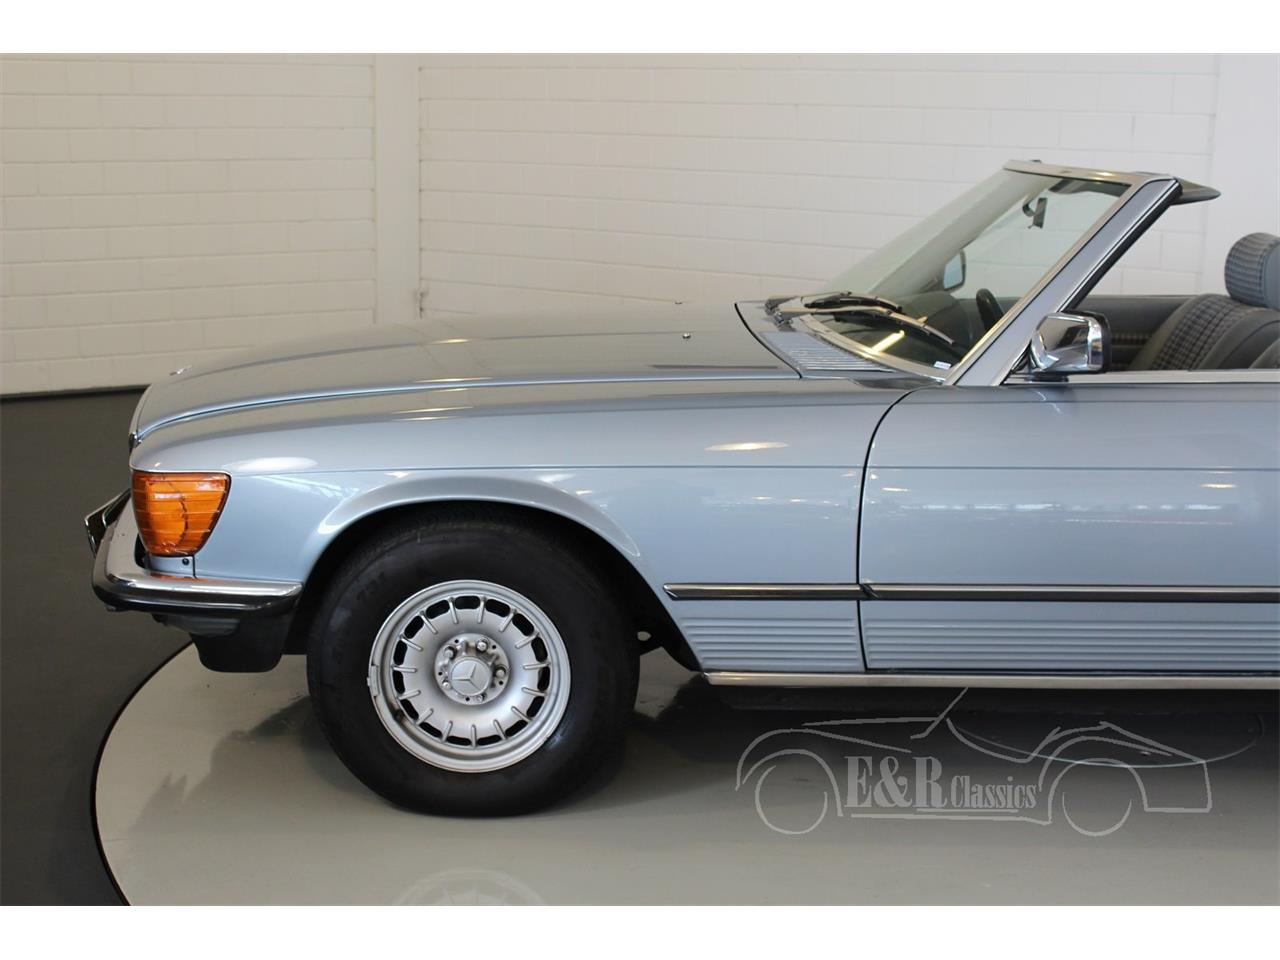 Large Picture of '83 280SL located in noord brabant - $34,150.00 Offered by E & R Classics - QEBS